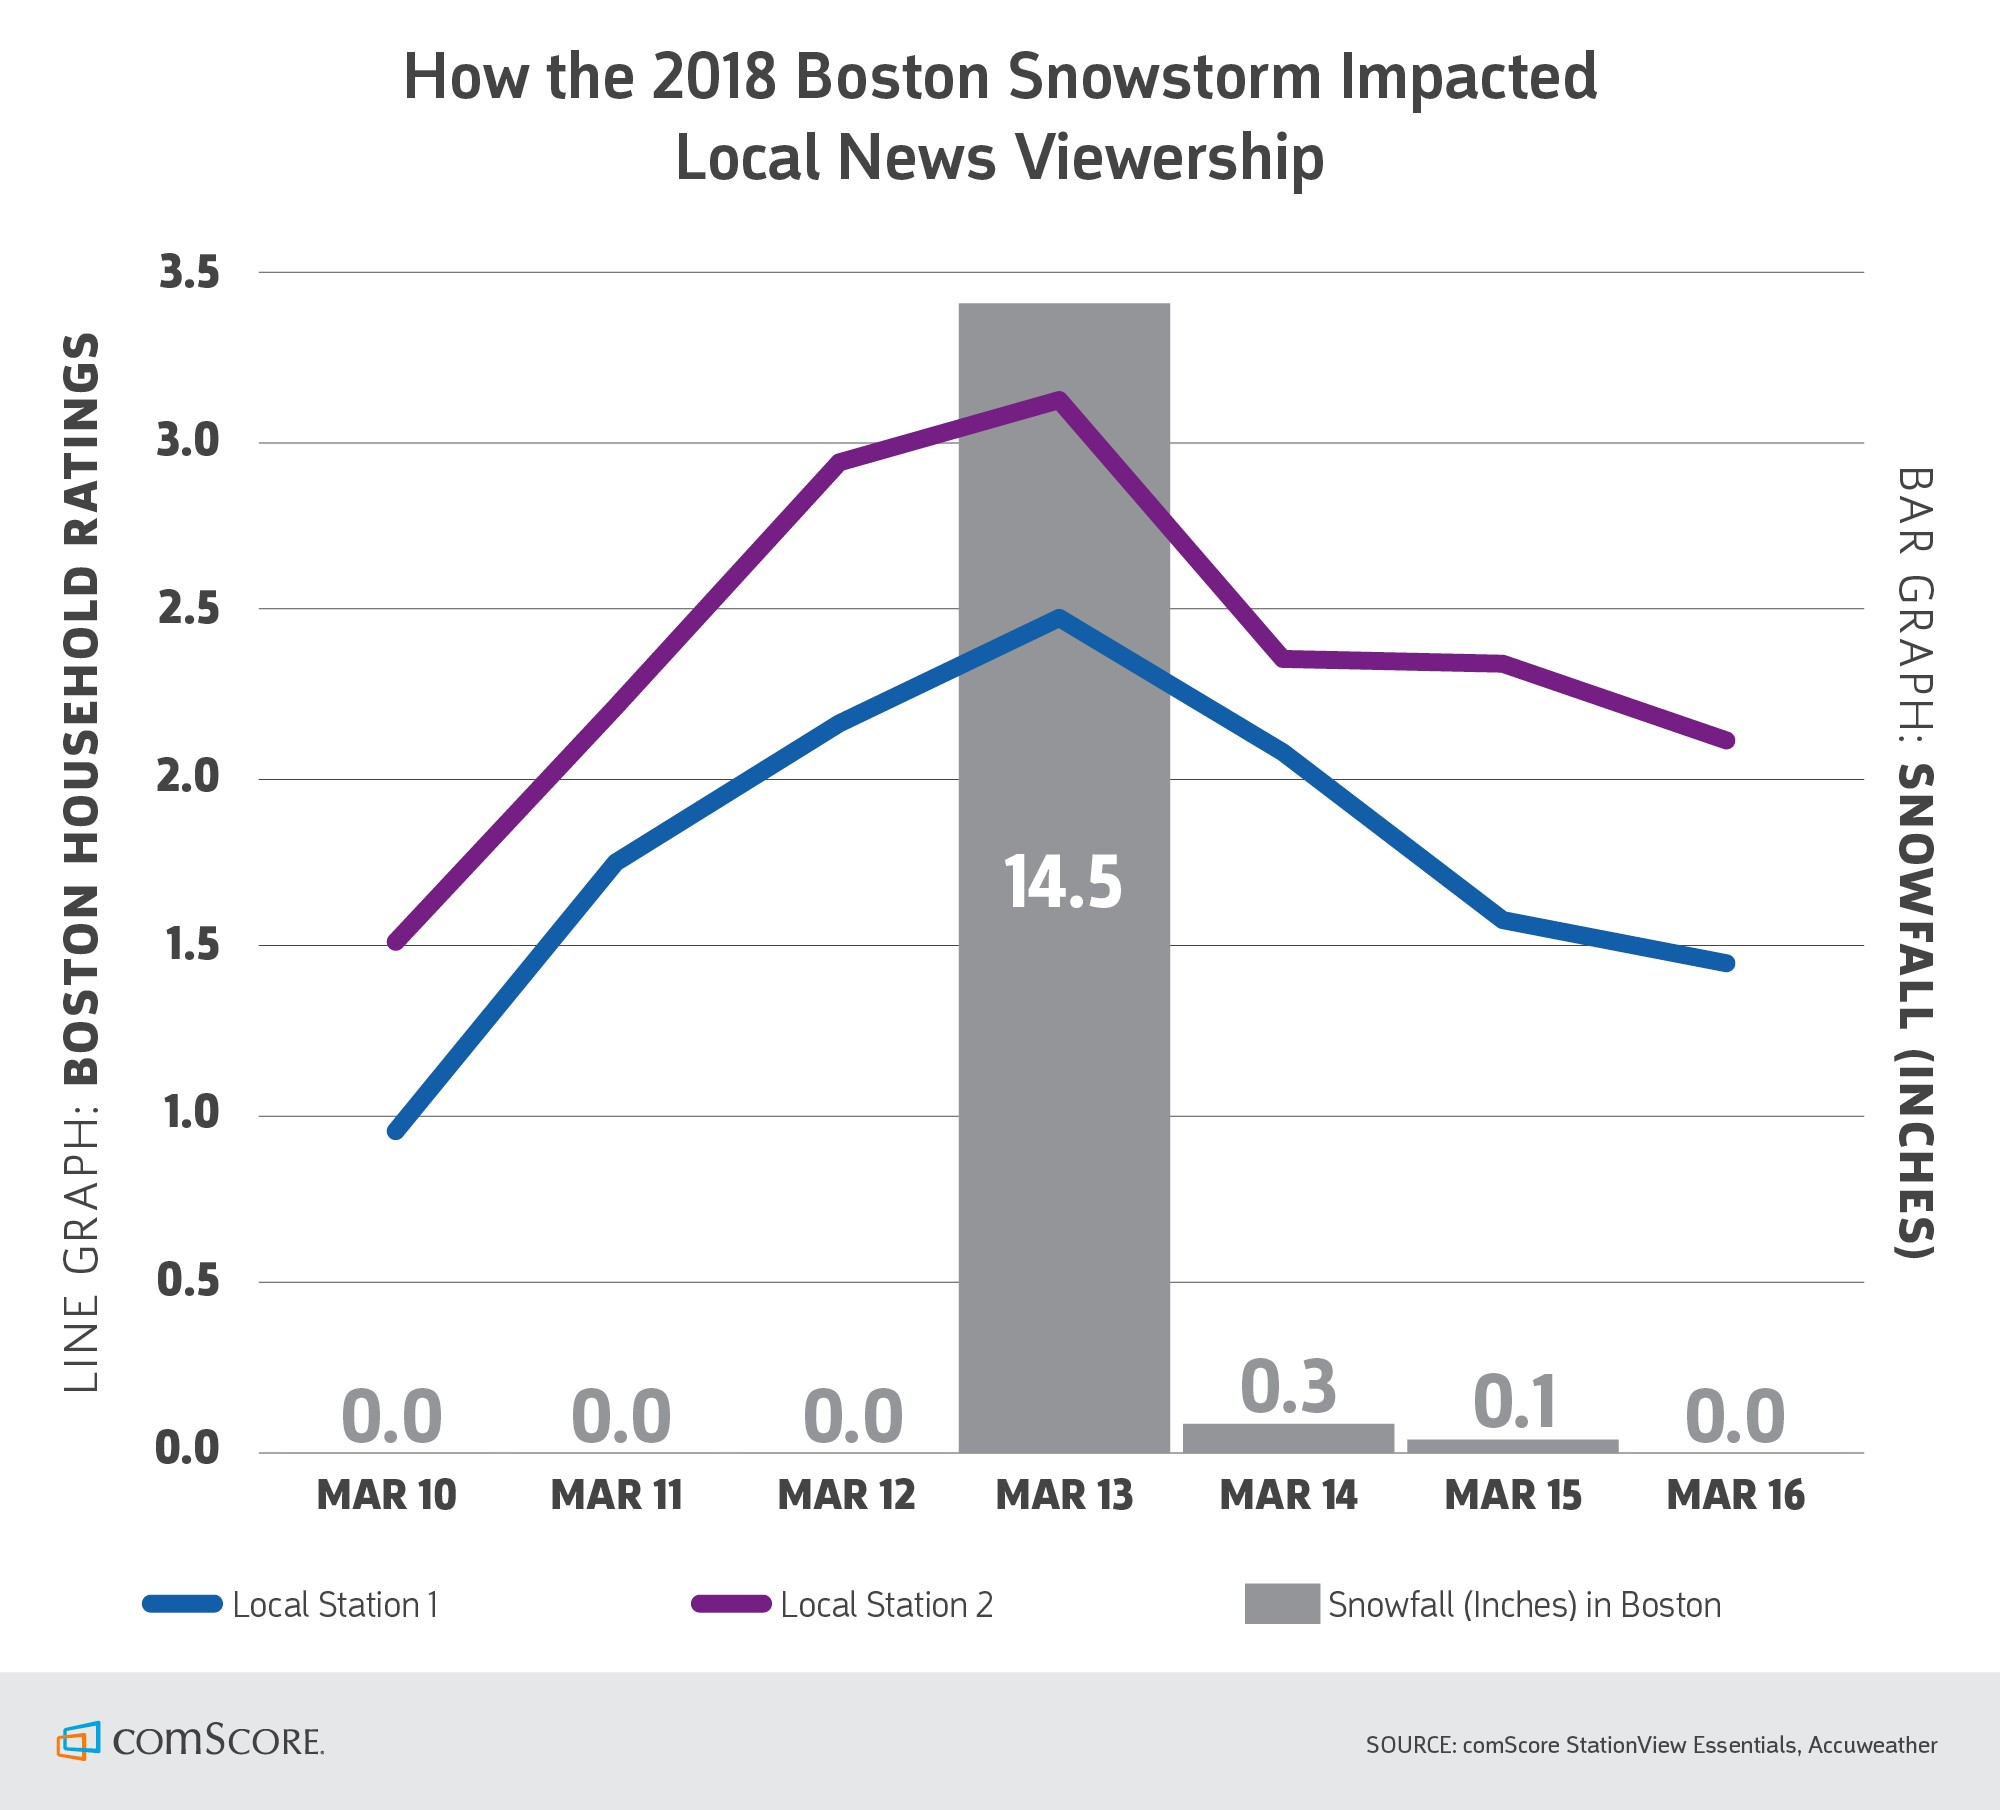 How the 2018 Boston Snowstorm Impacted Local News Viewership